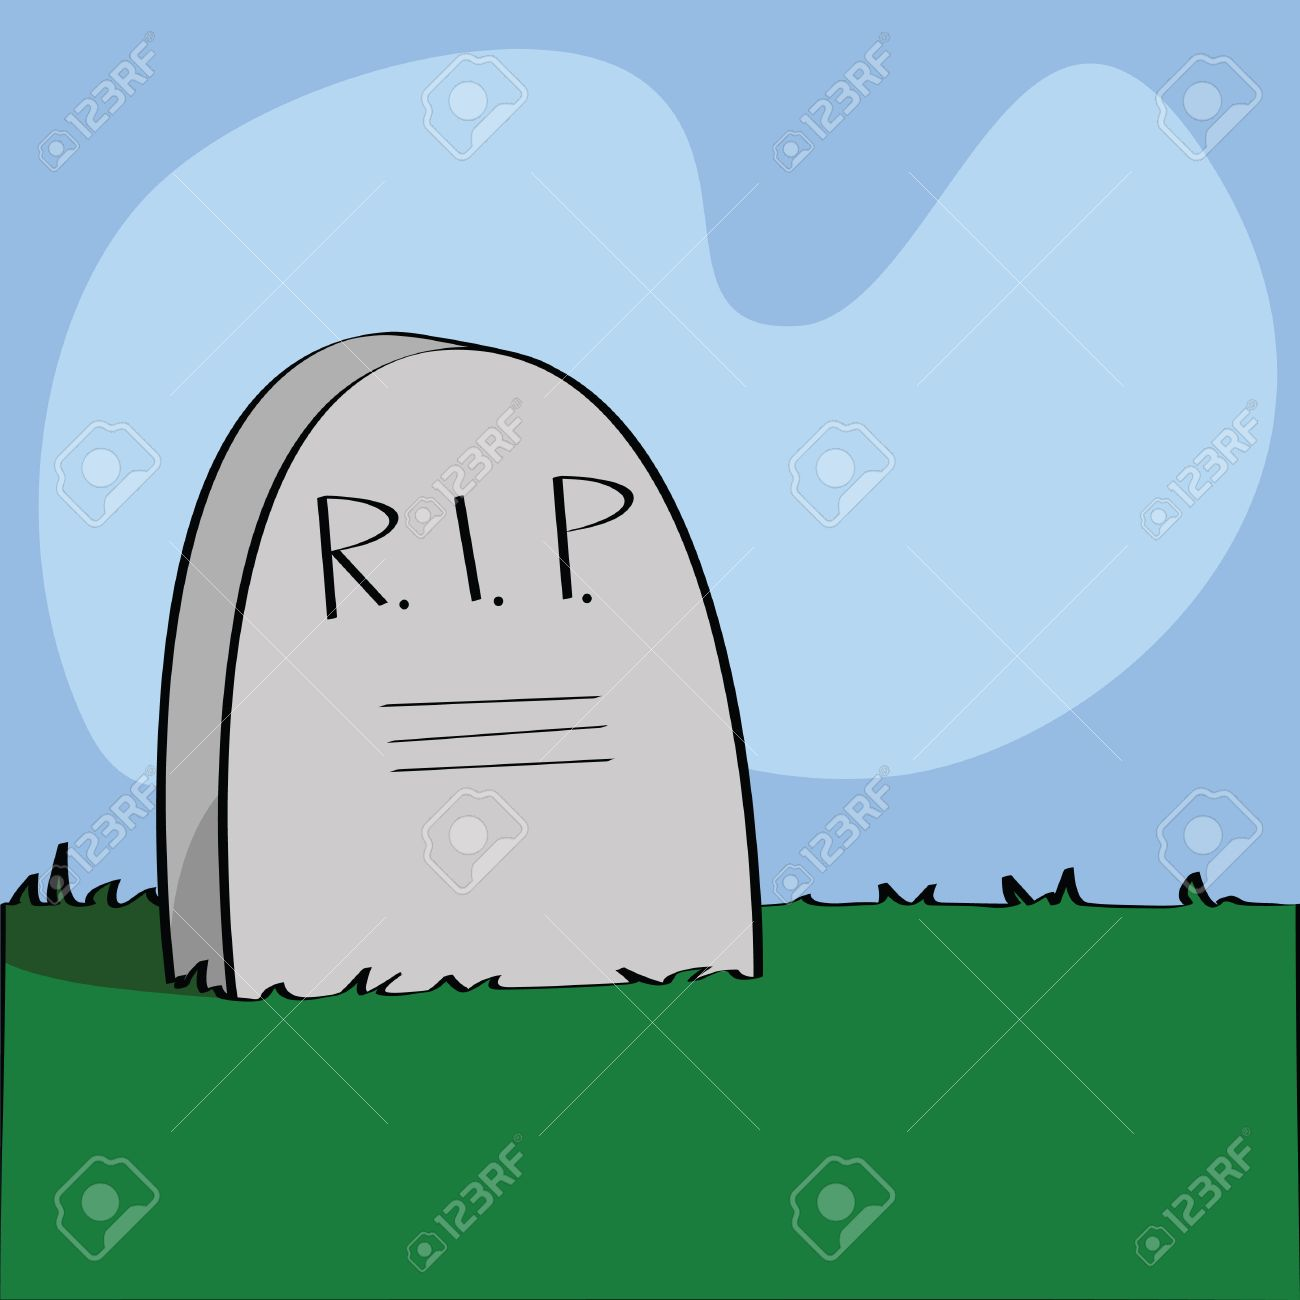 illustration of a cartoon tombstone with r i p written on it rh 123rf com cartoon tombstone generator cartoon tombstone png